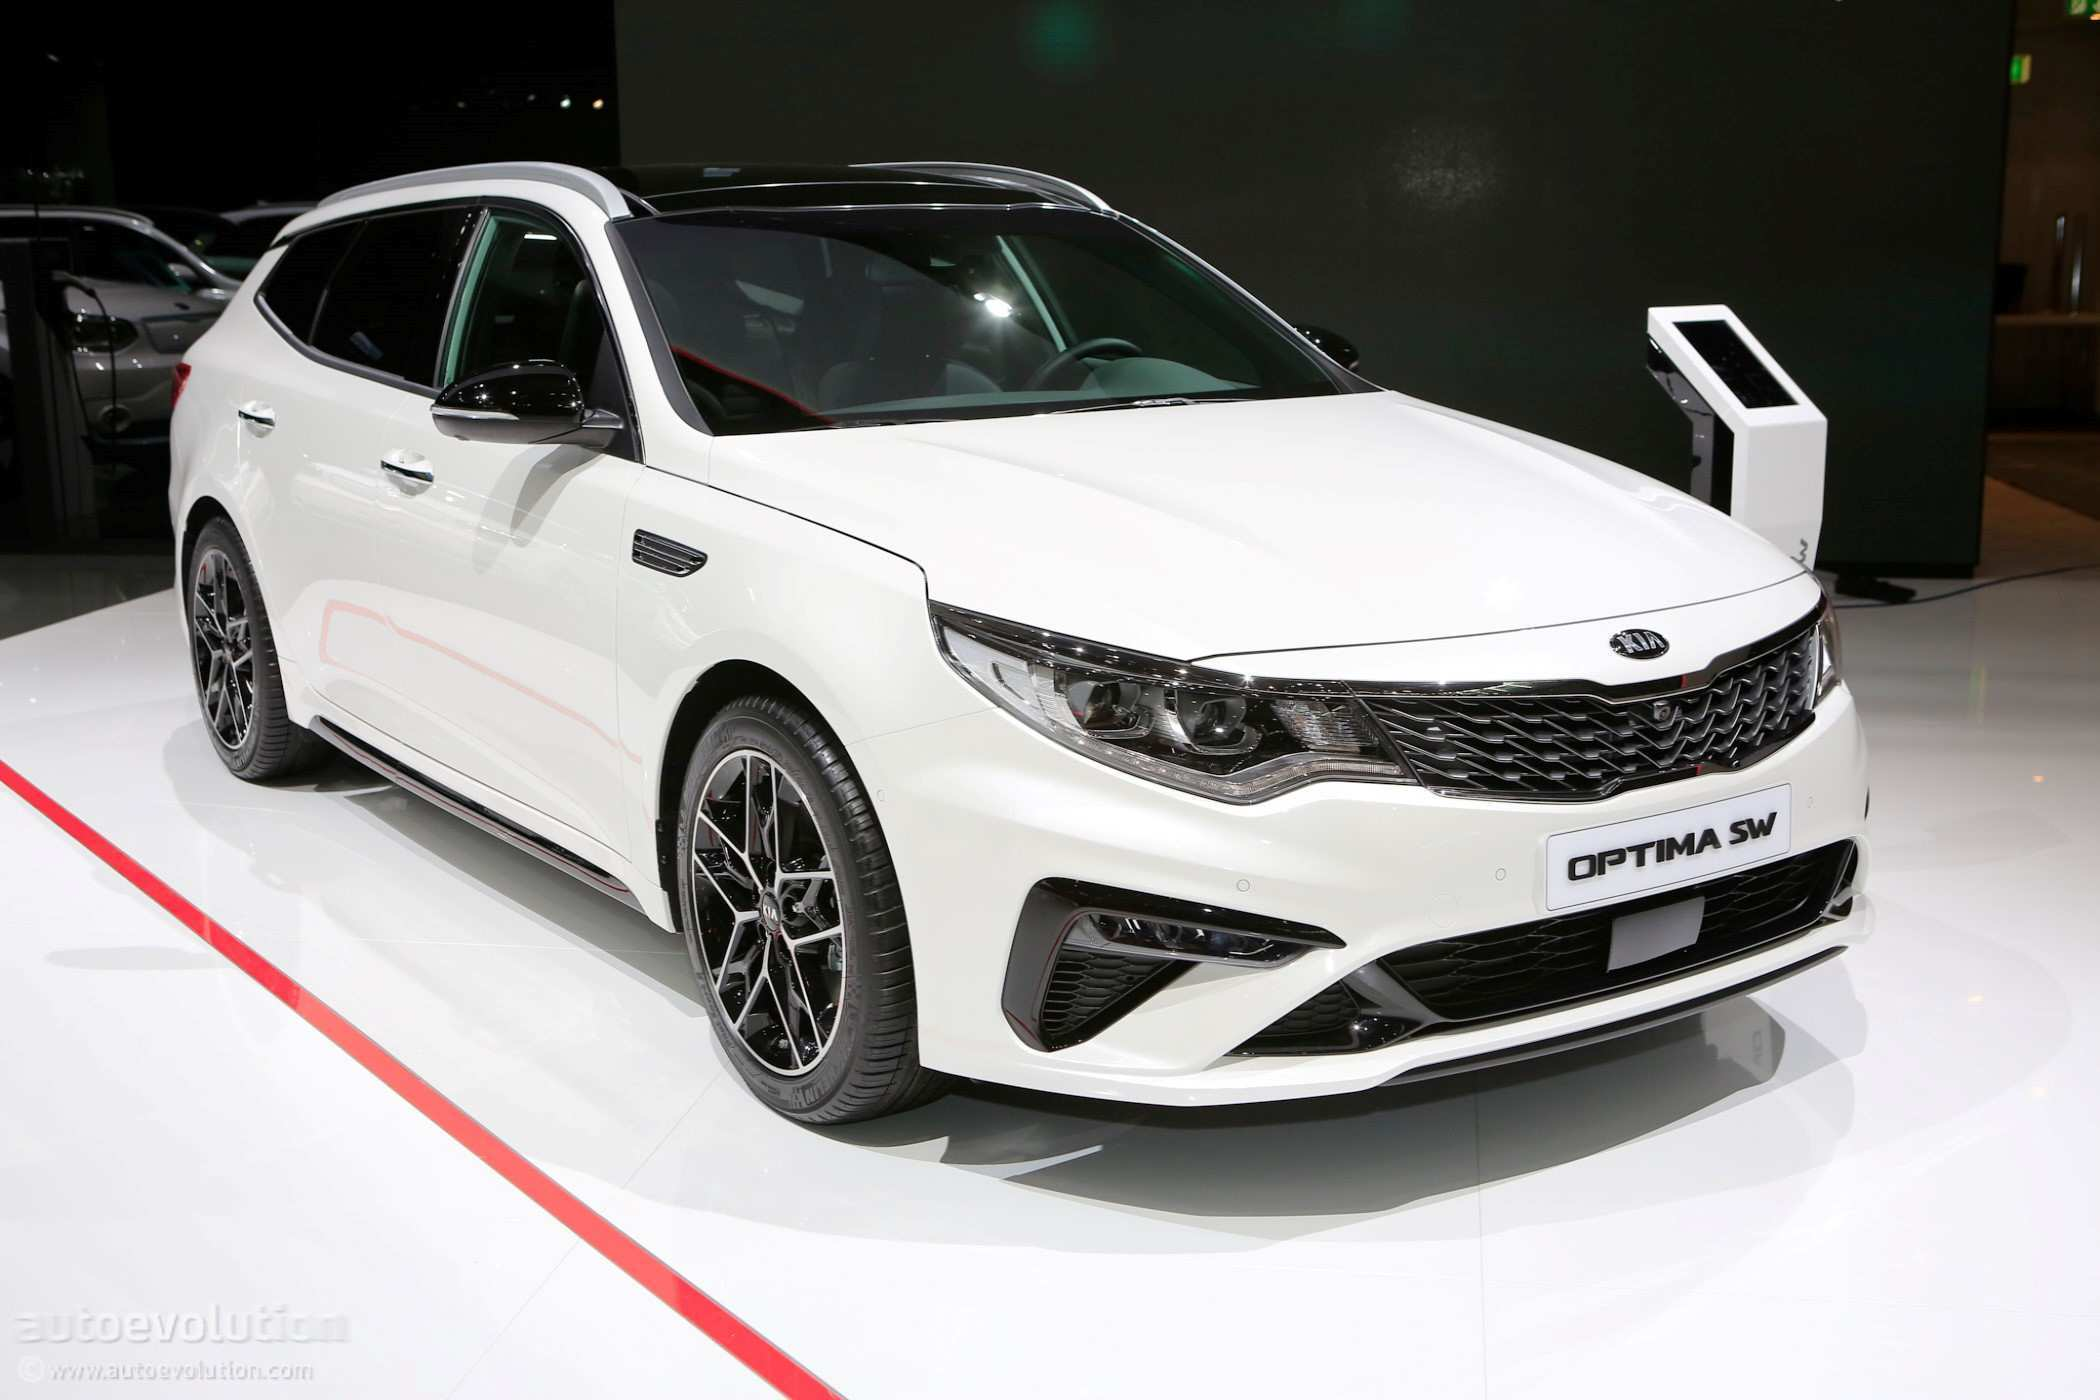 86 The 2020 Kia Optima Gt Spy Shoot